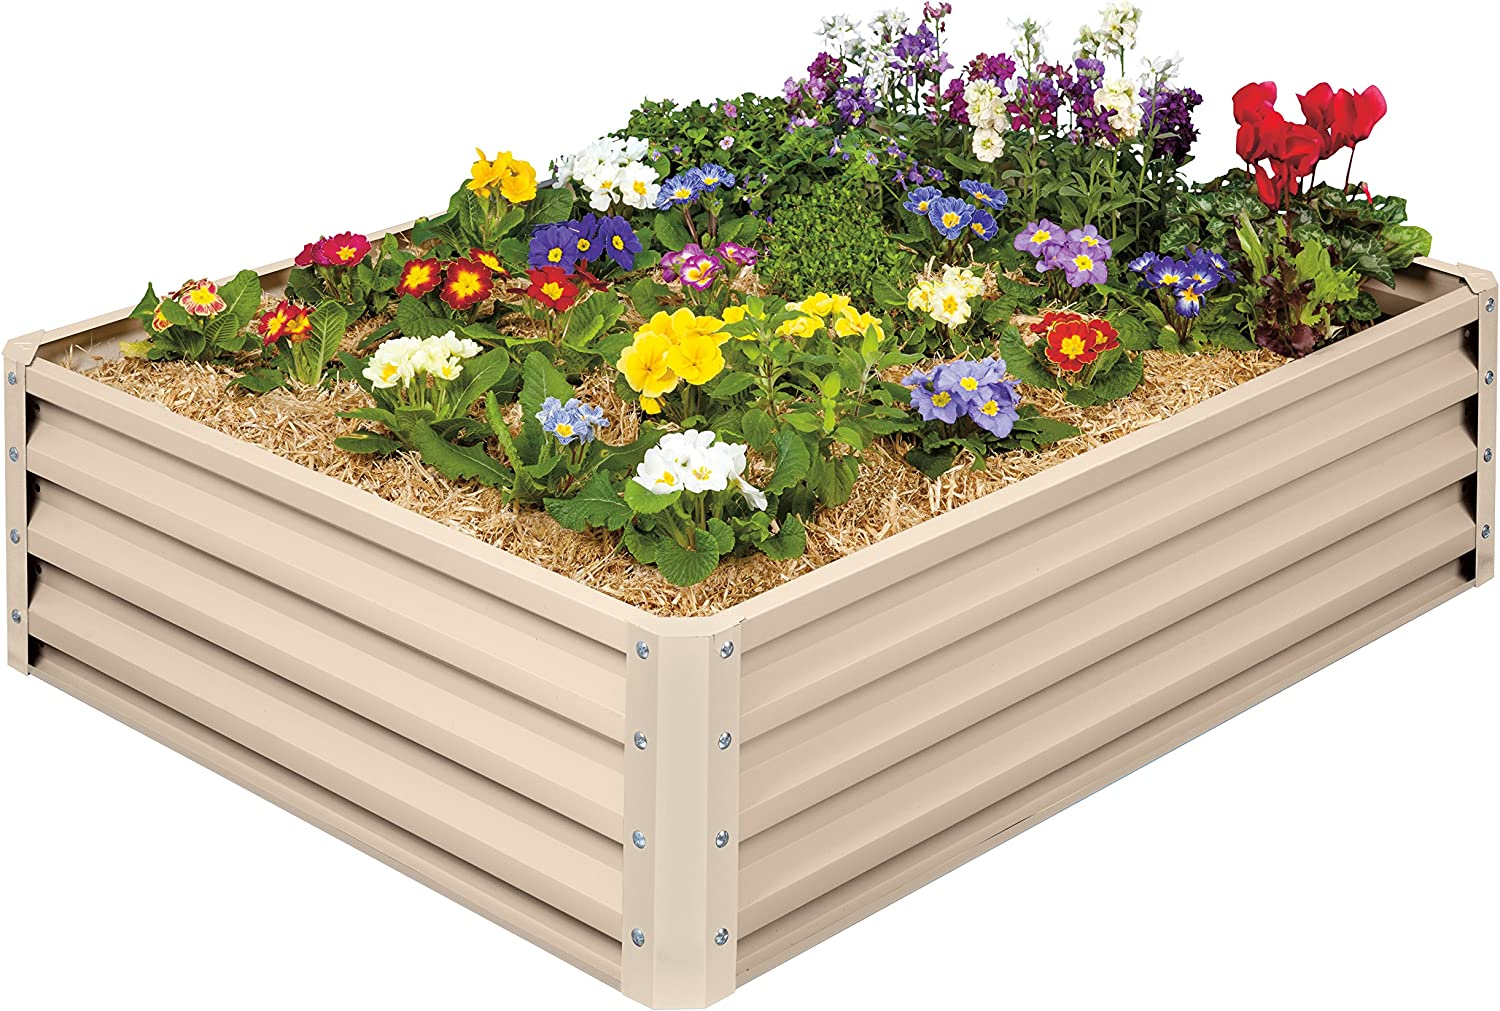 """Stratco Raised Garden Bed - 46"""" L x 35"""" W x 12"""" H -Beige - Metal Construction for Easy Cleaning and Will not Twist or Rot"""